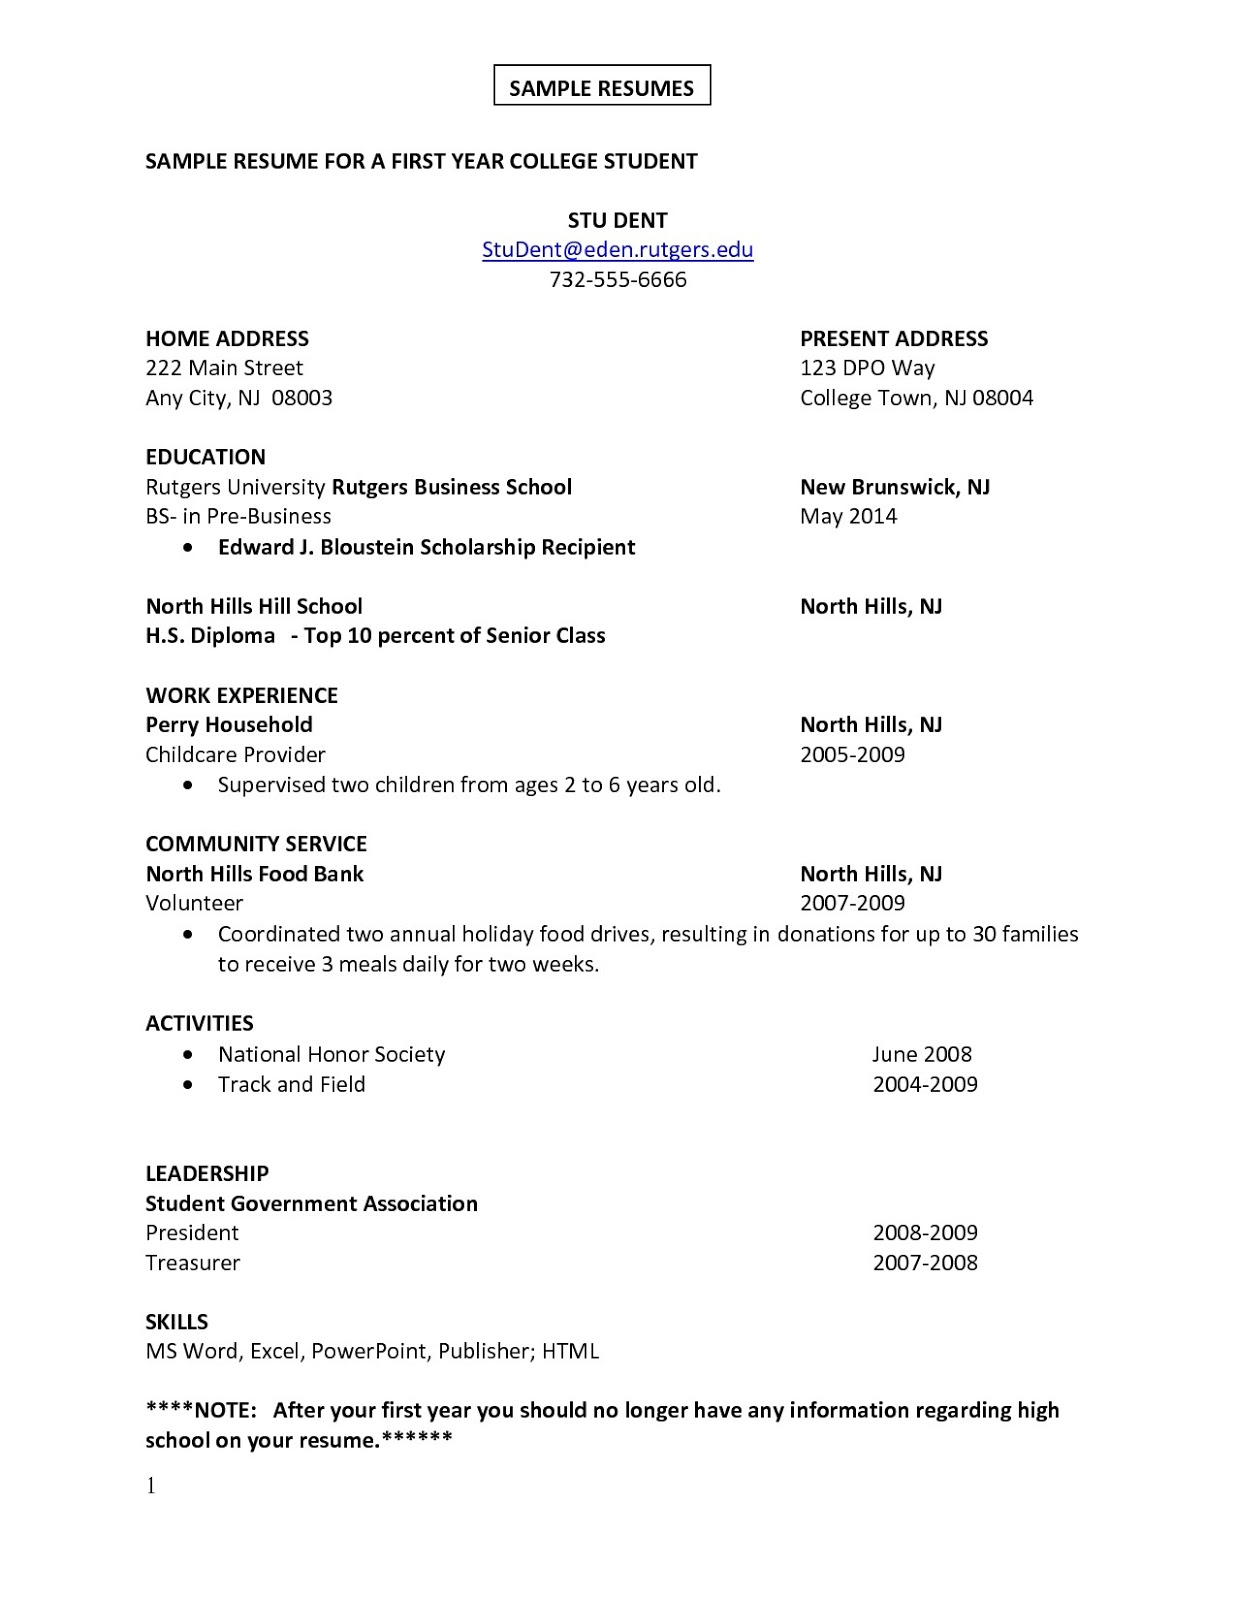 Sample Resume Examples For Jobs Examples Of Resumes  Resume For Jobs